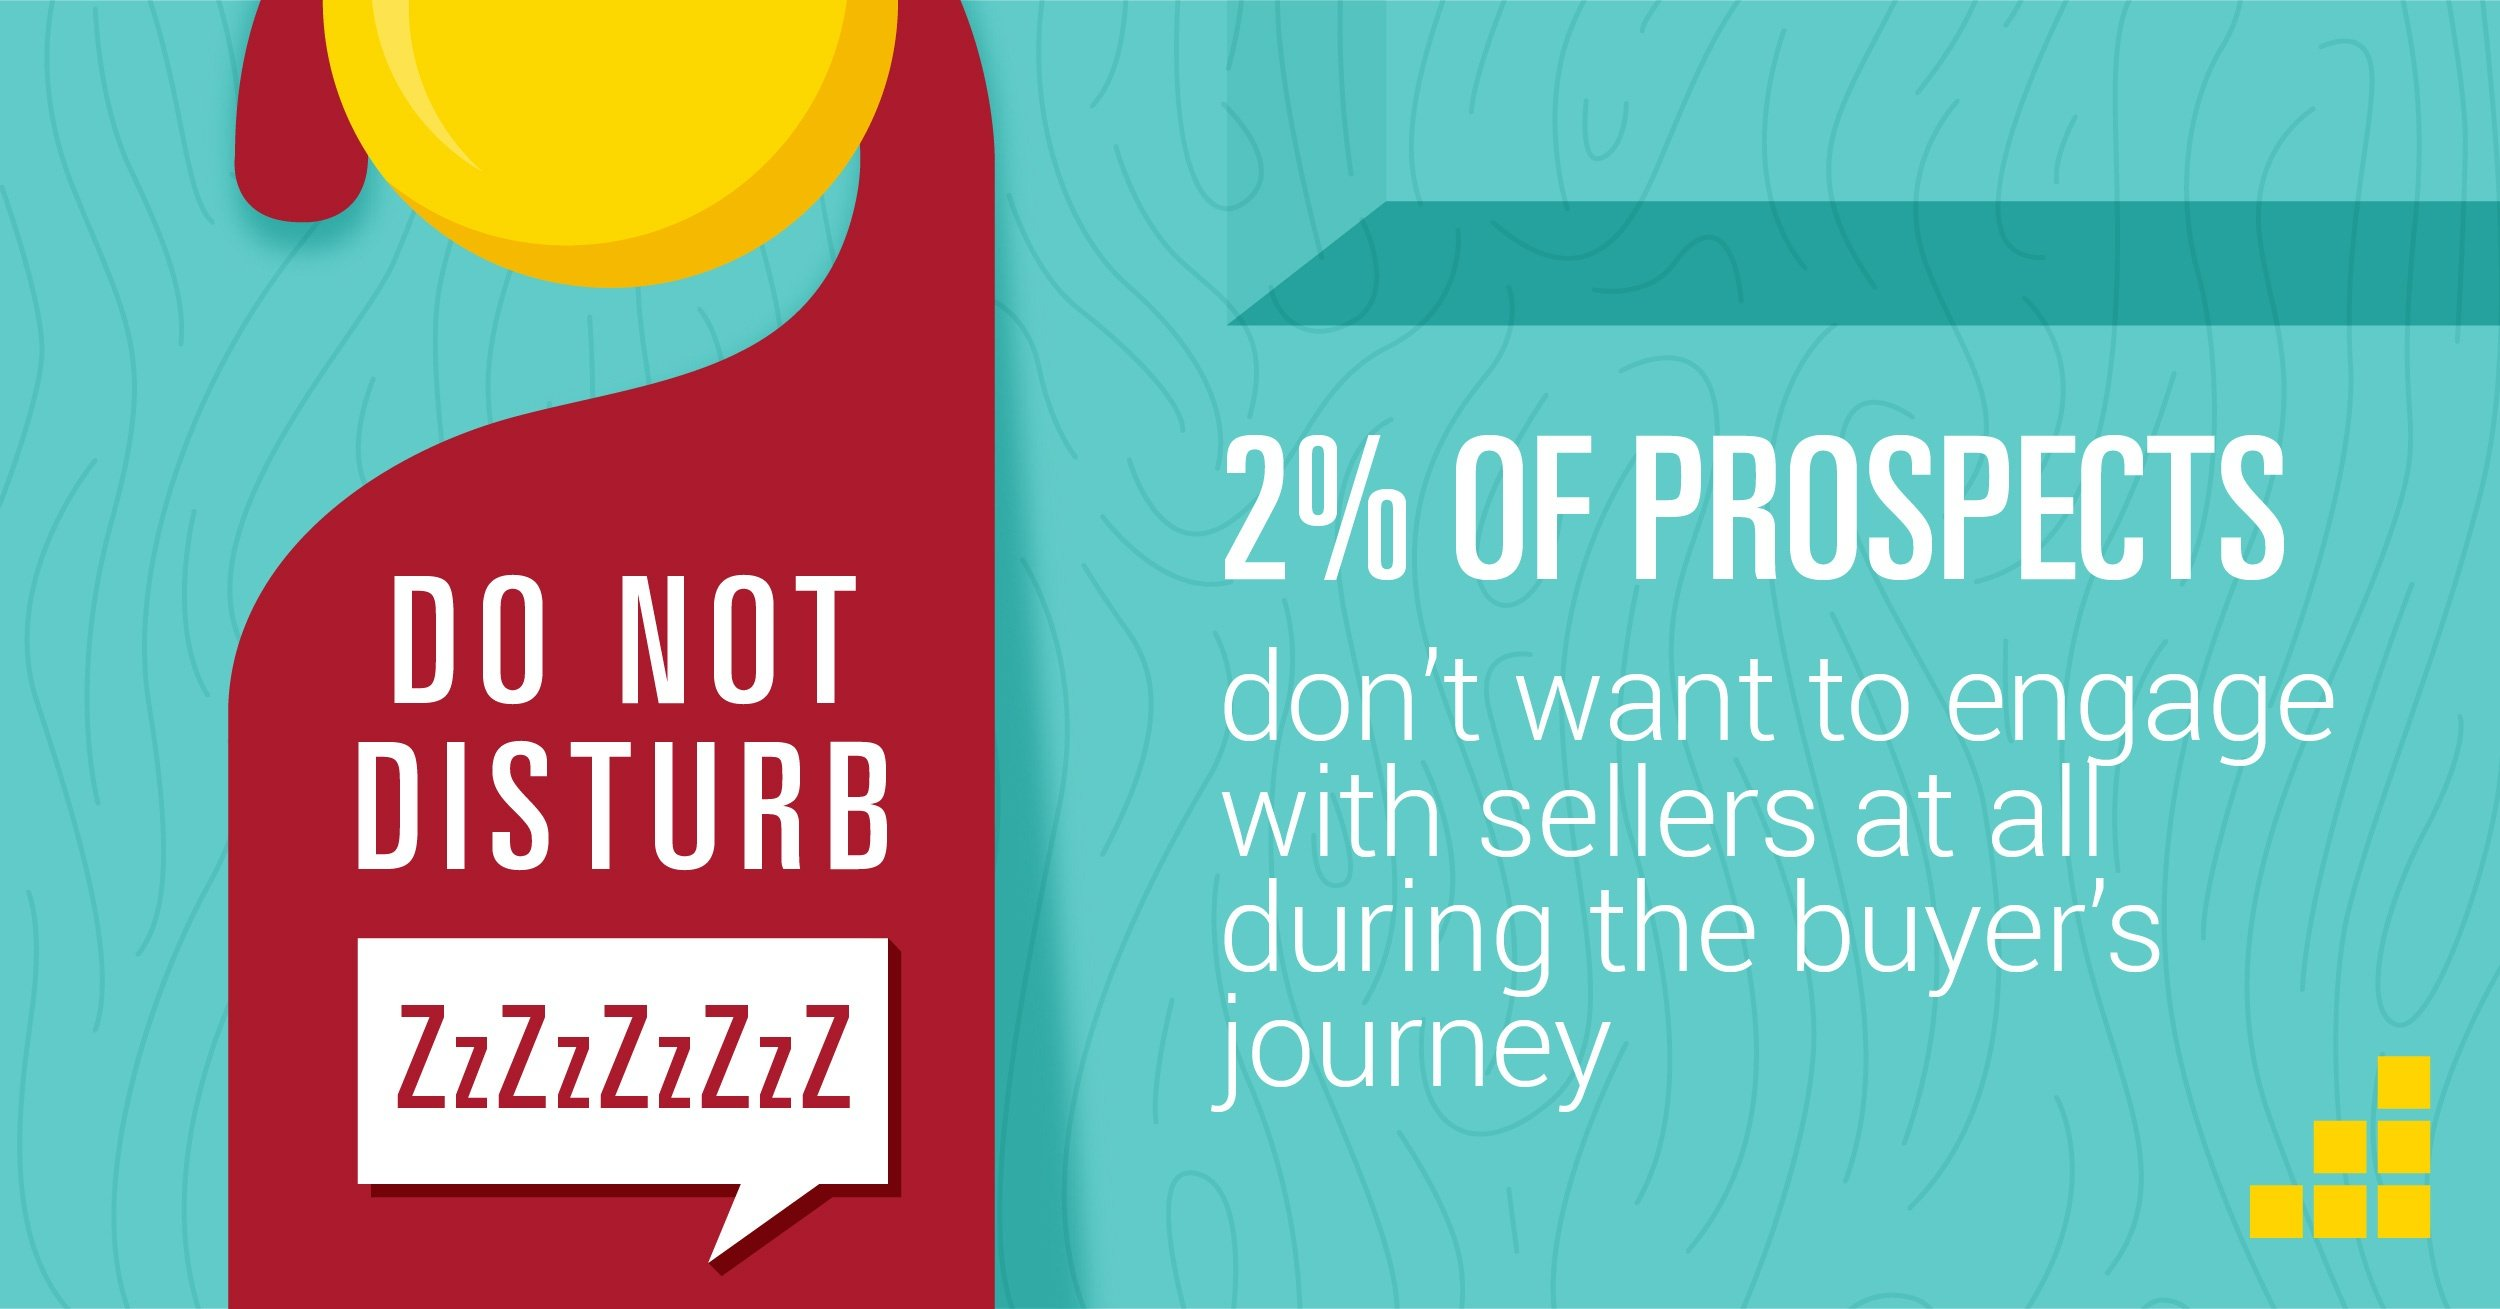 2% of prospects don't want to engage with sellers at all sales productivity stats